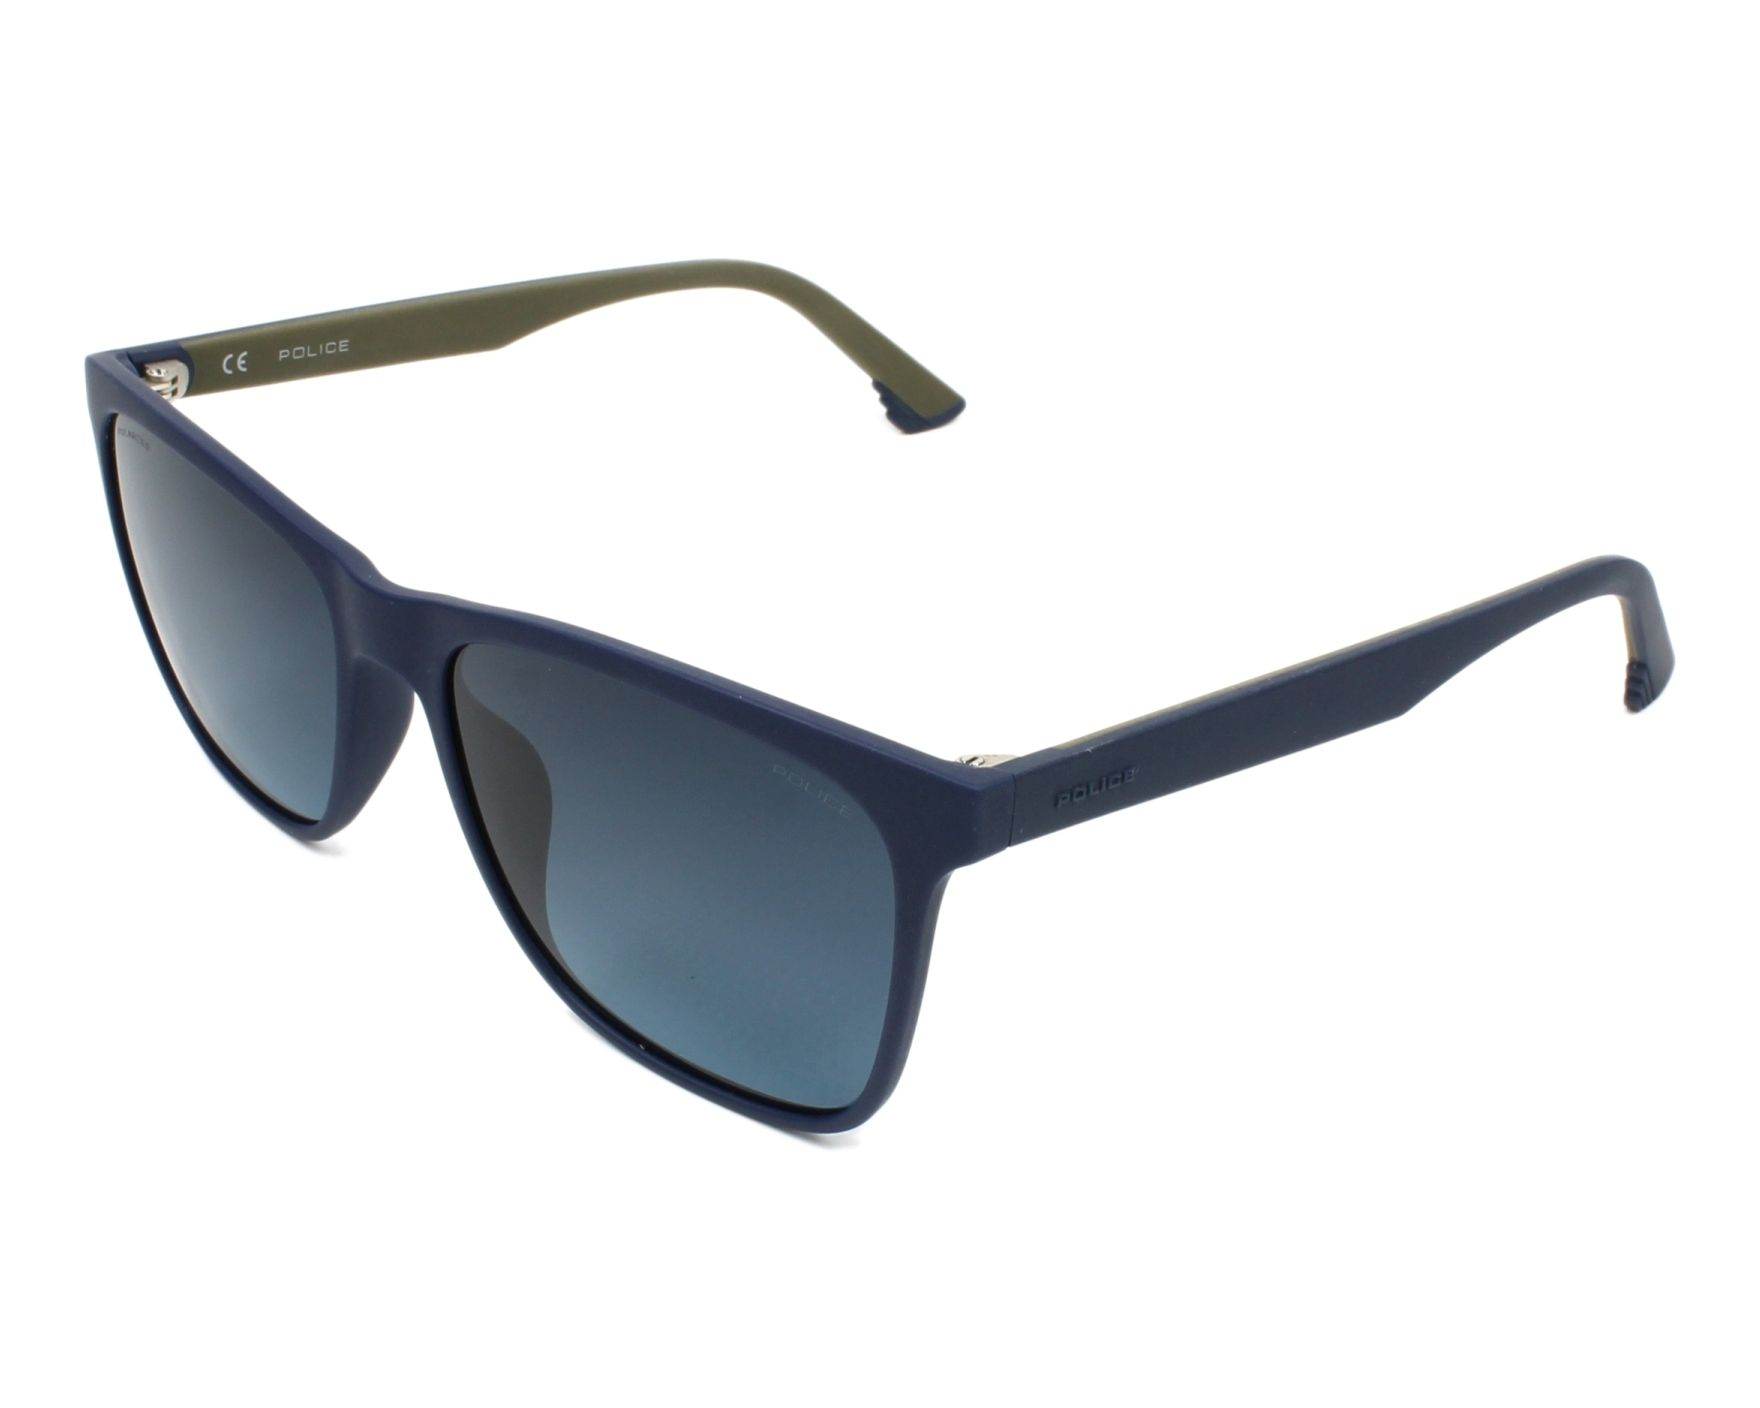 thumbnail Sunglasses Police SPL-633 7SFP - Blue Grey profile view 0f6c0b1bee